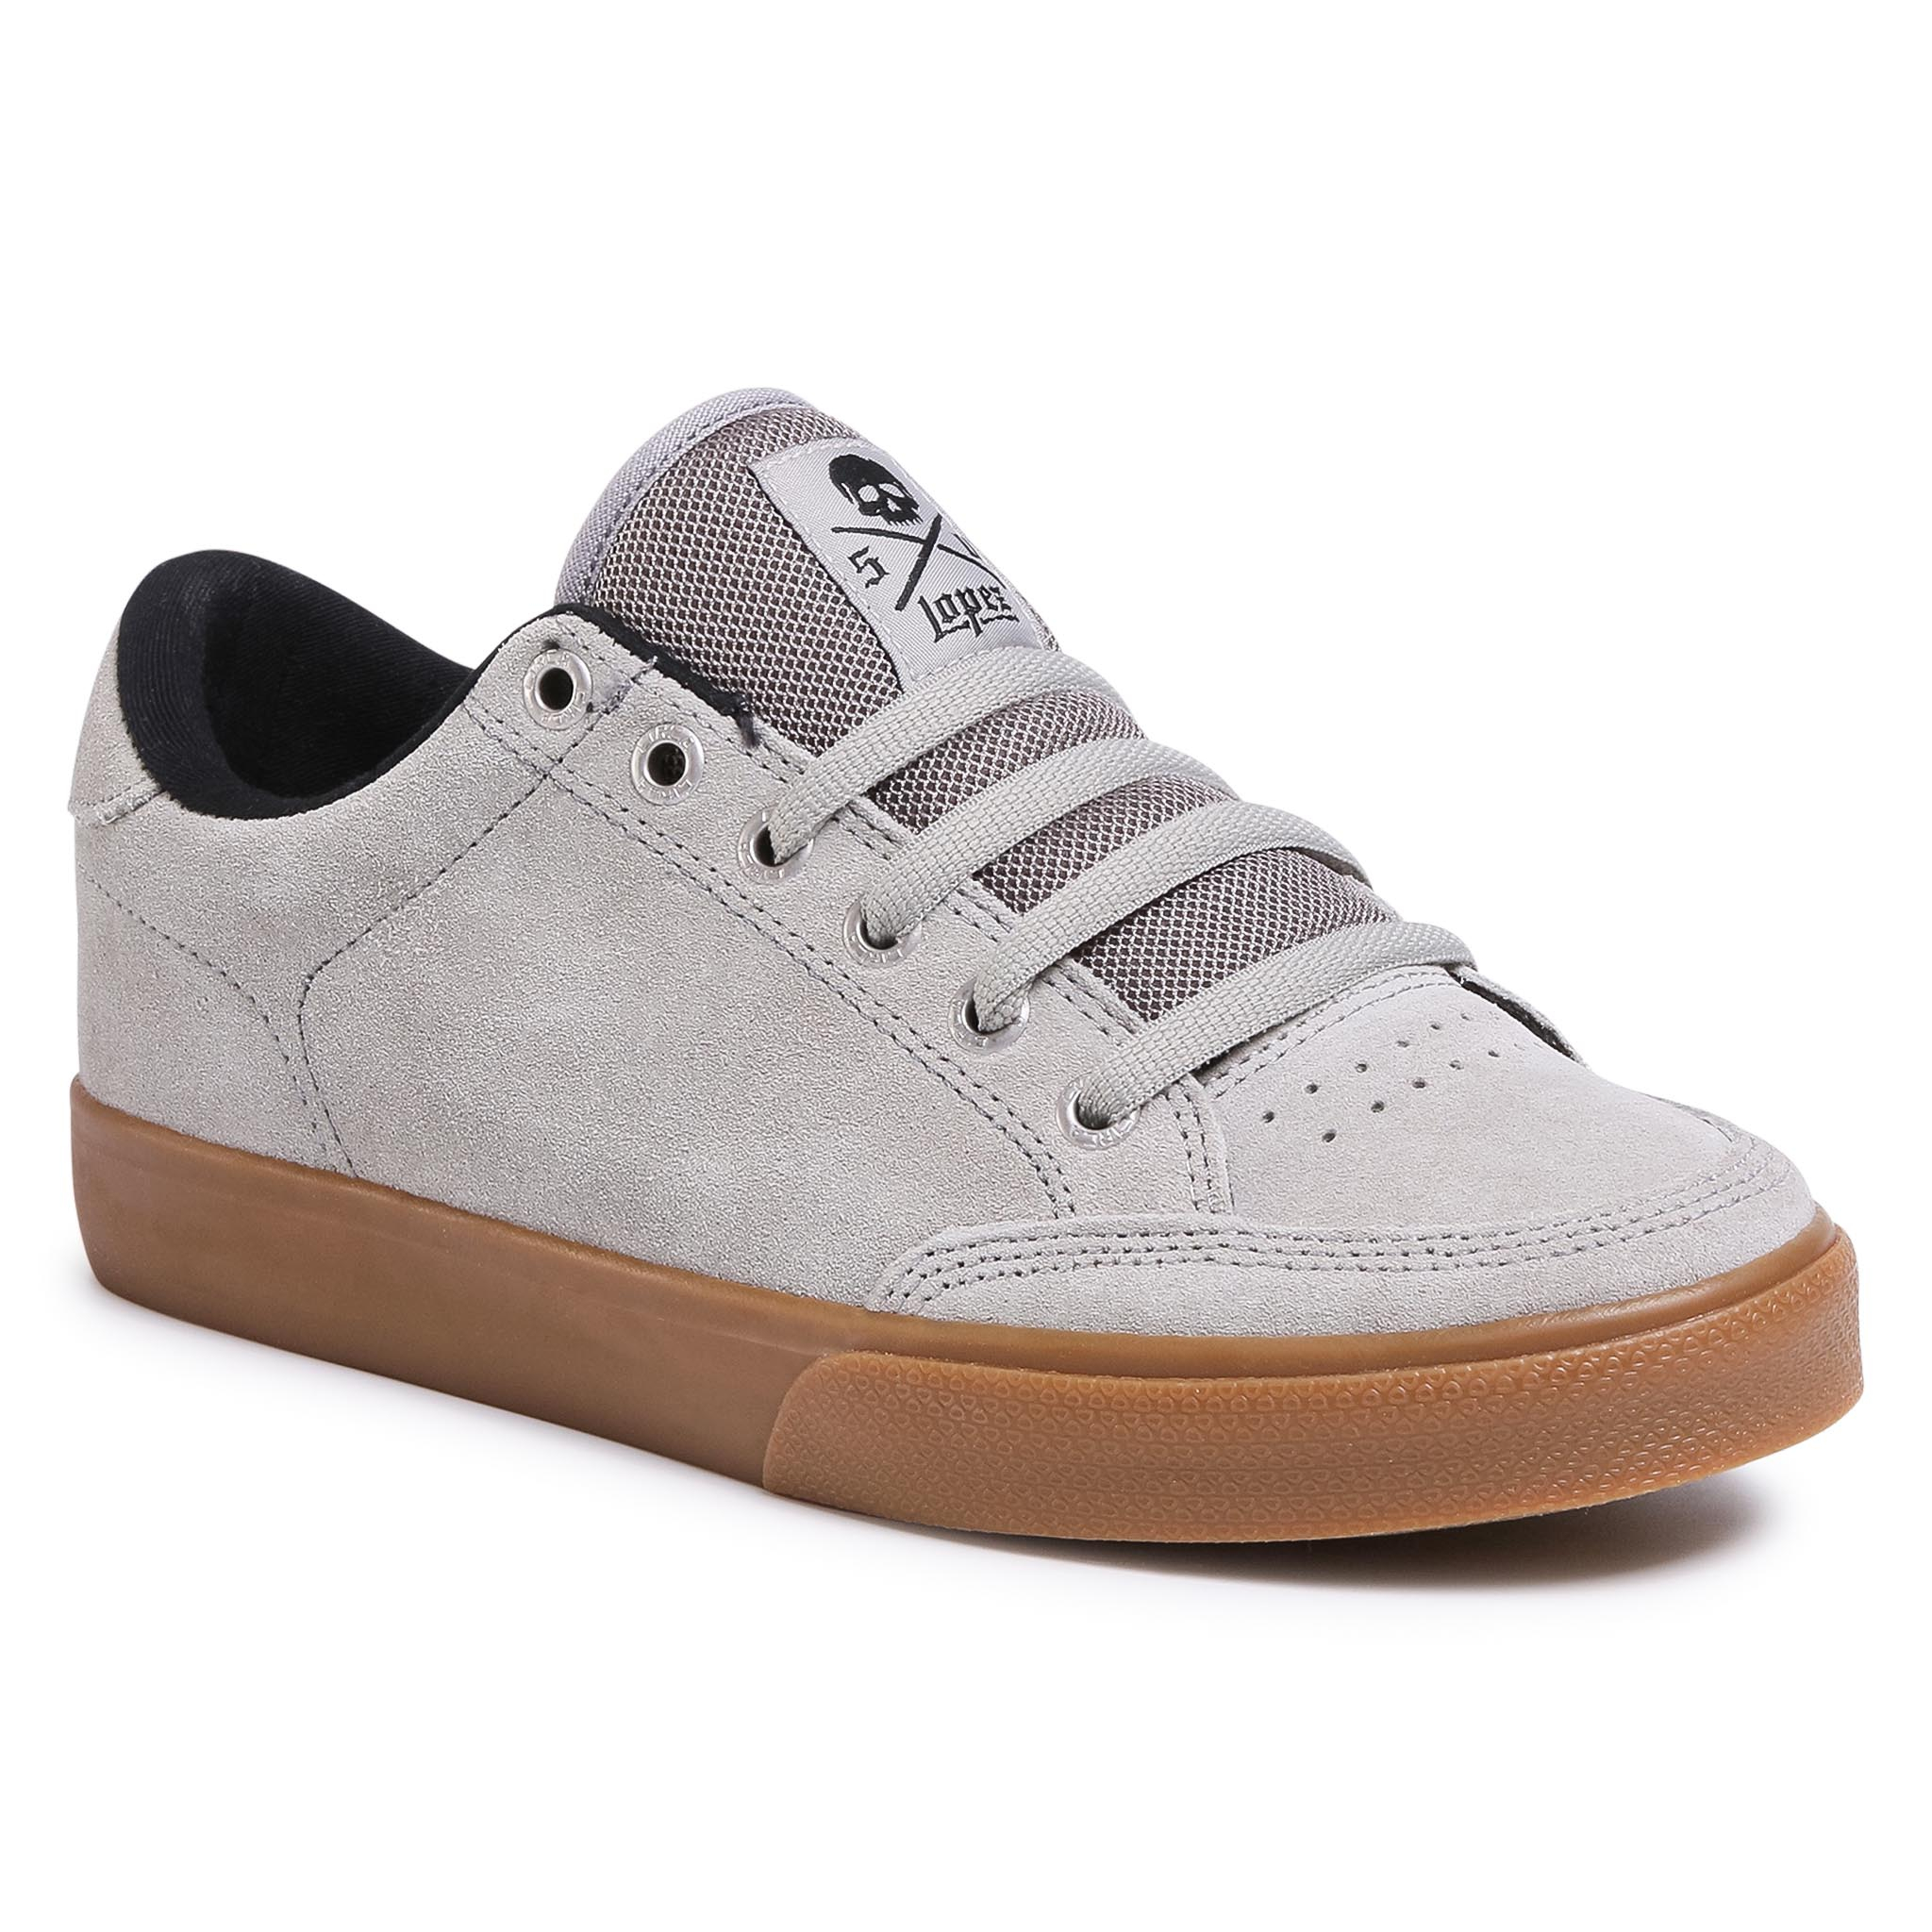 Sneakers C1RCA - Lopez 50 Flint AL50 EGB Grey/Black